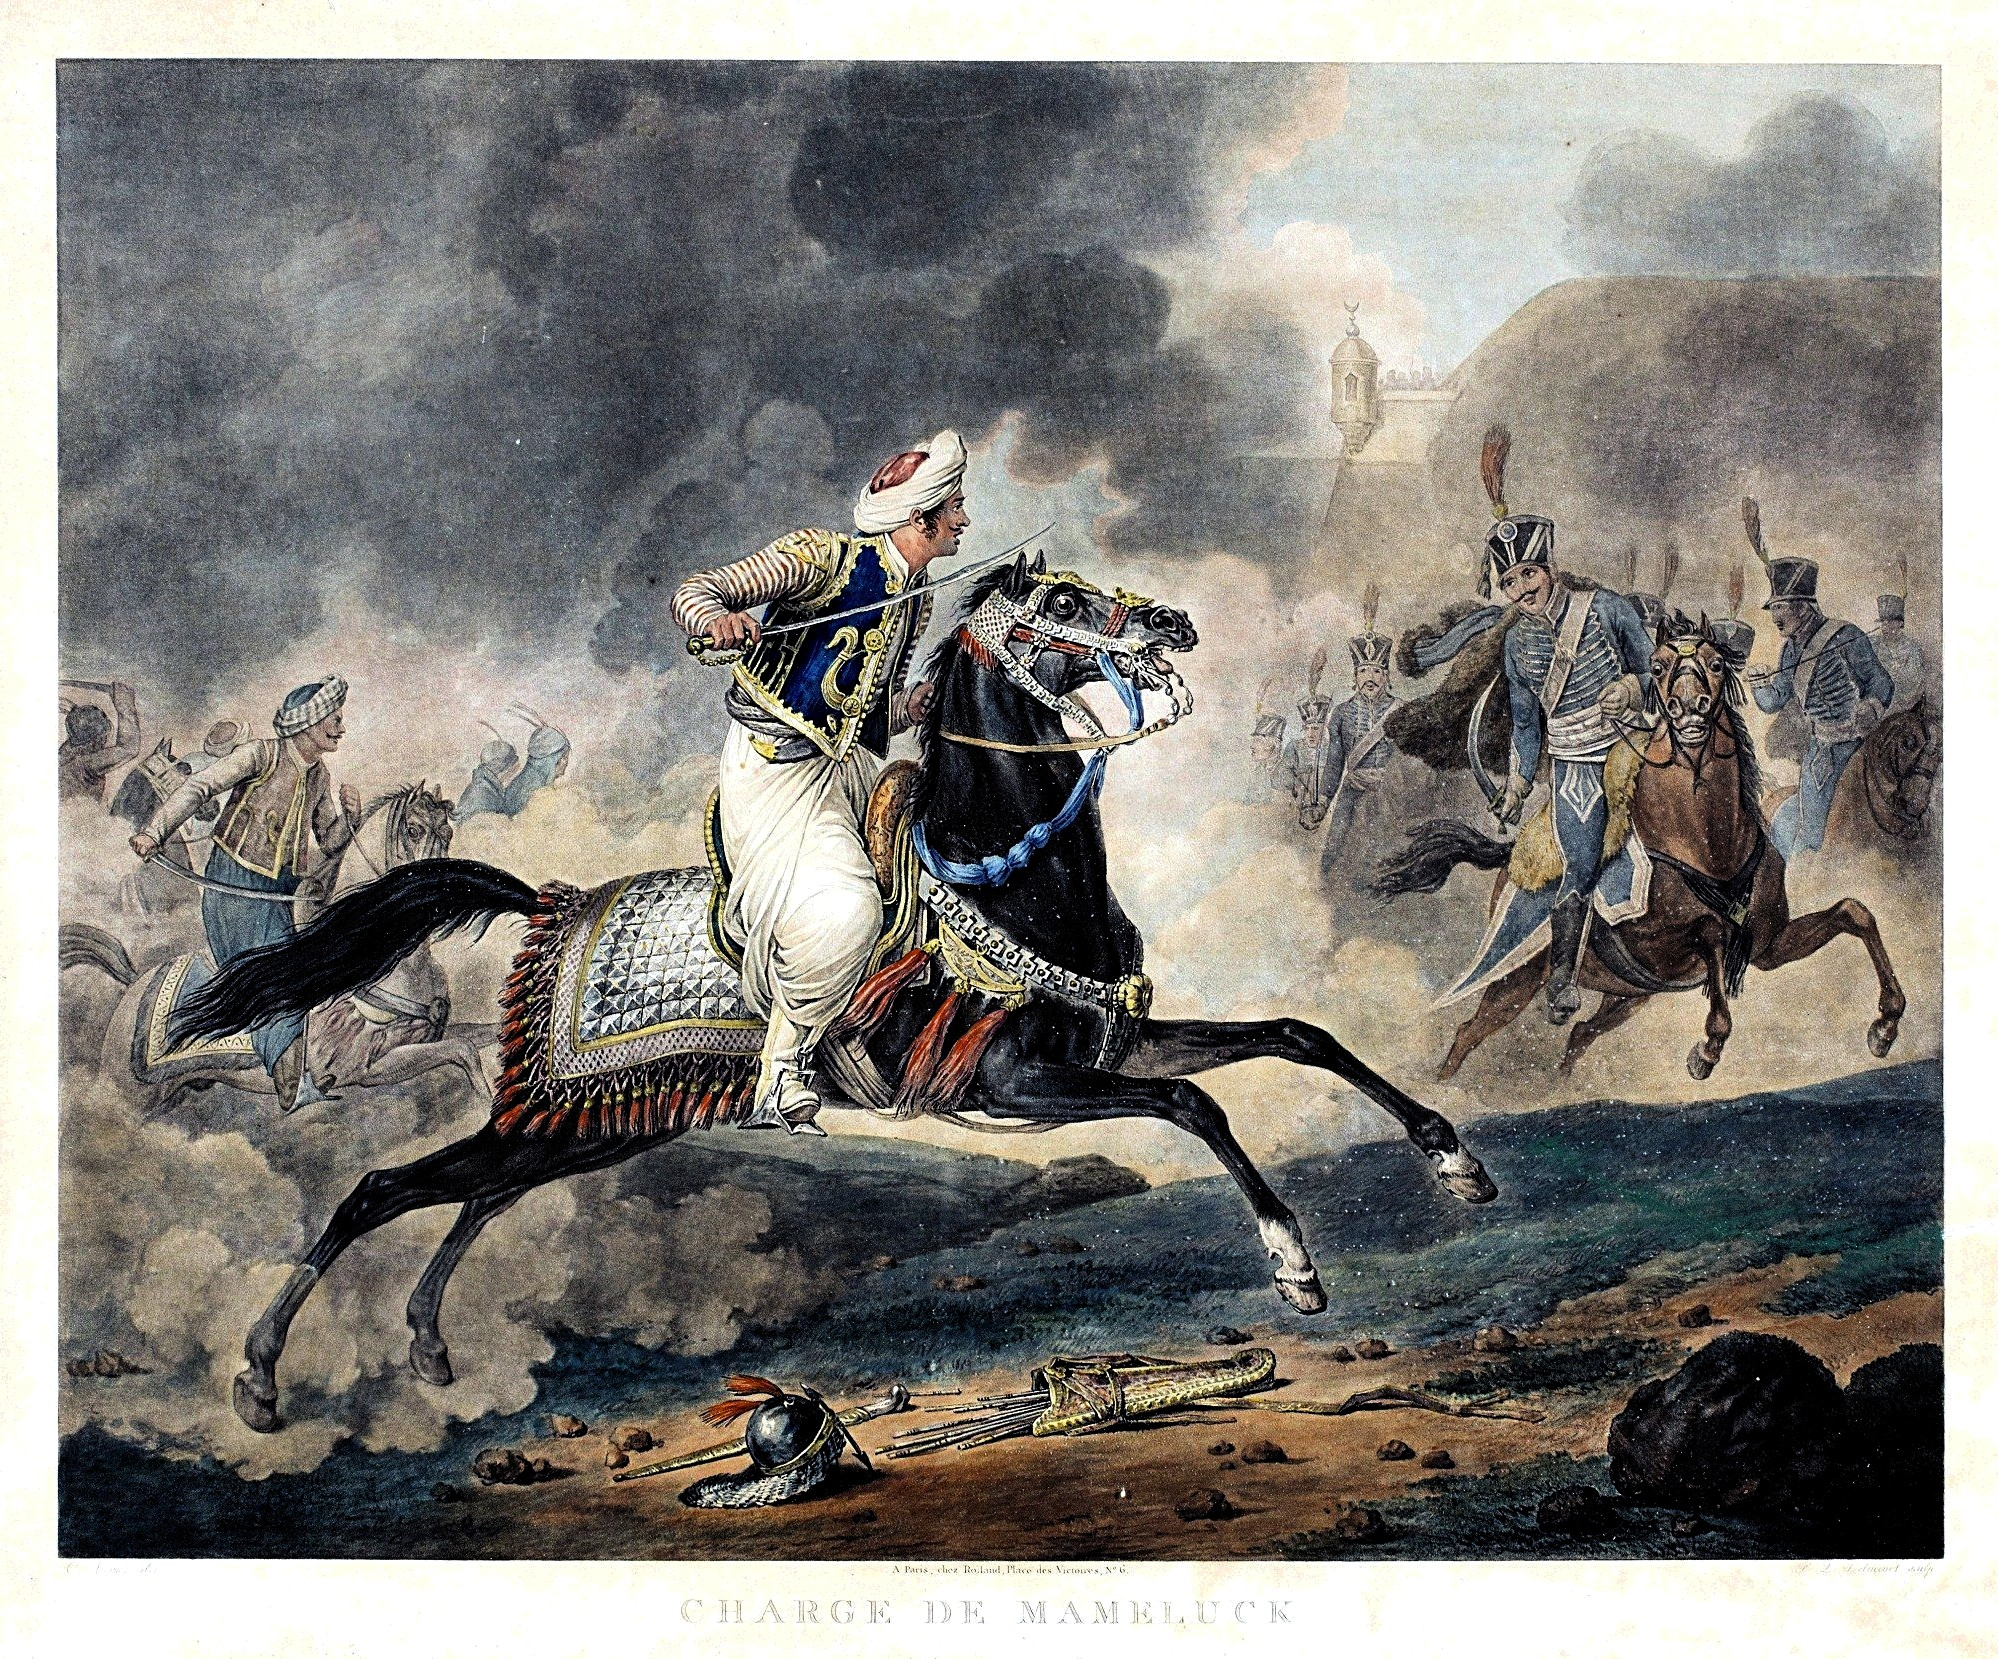 A mounted man on a dark horse attacking a line of mounted men